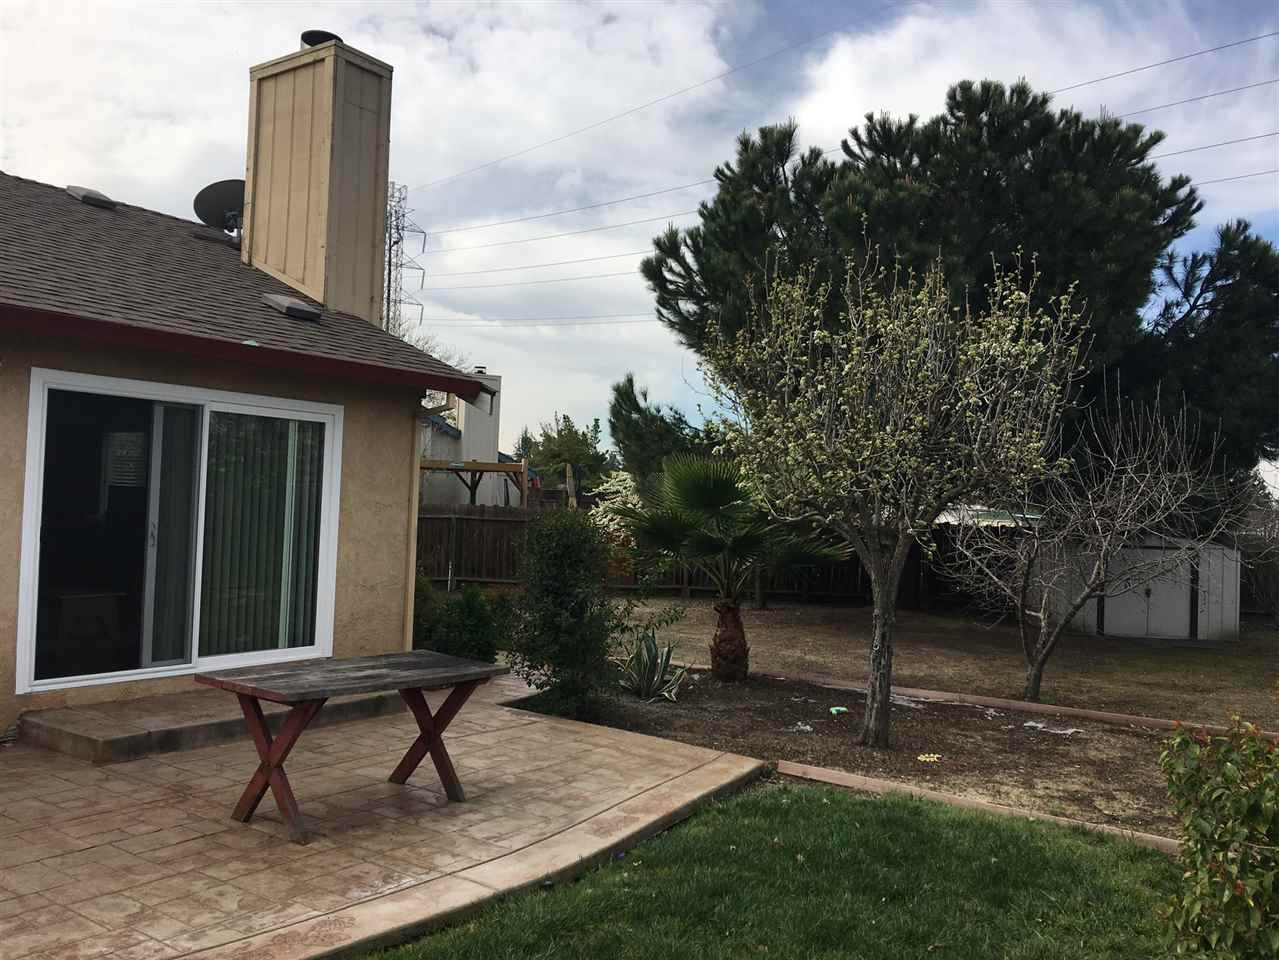 Additional photo for property listing at 5402 Treeflower Drive  Livermore, California 94551 United States